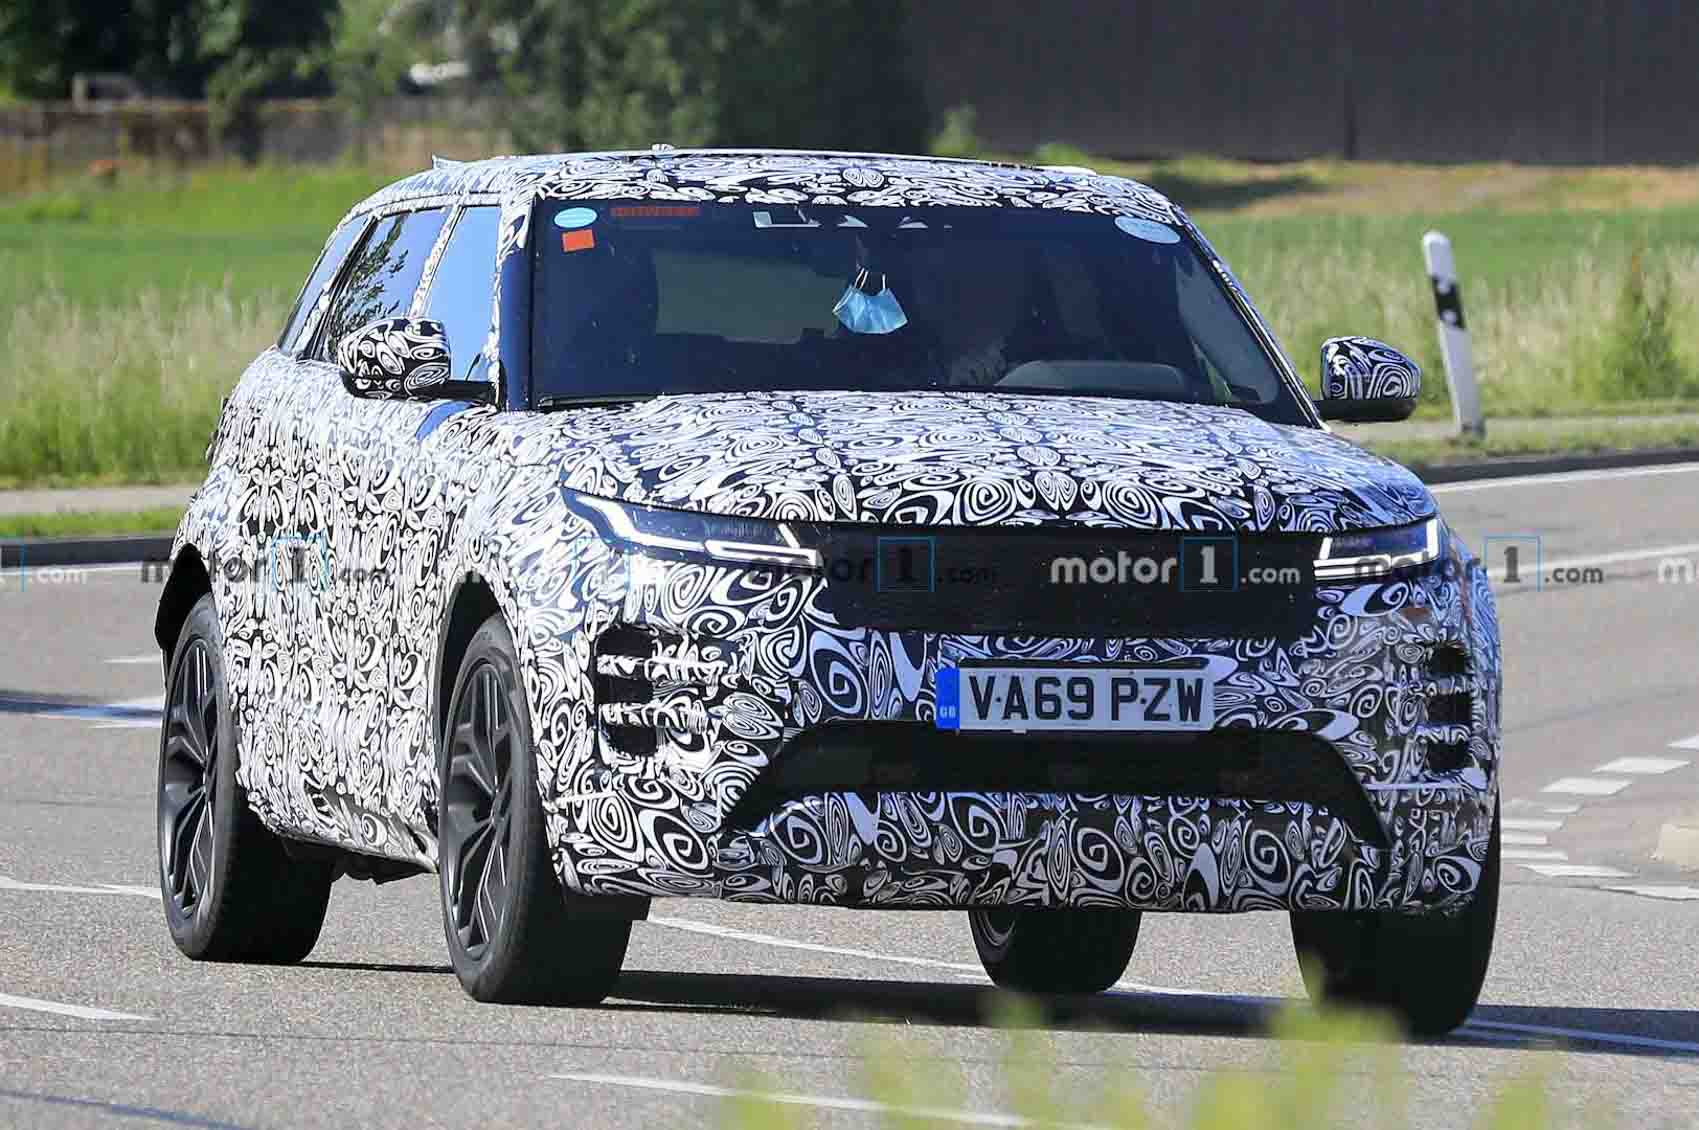 Range Rover Evoque 7-seater Version Spotted With Heavy Camouflage